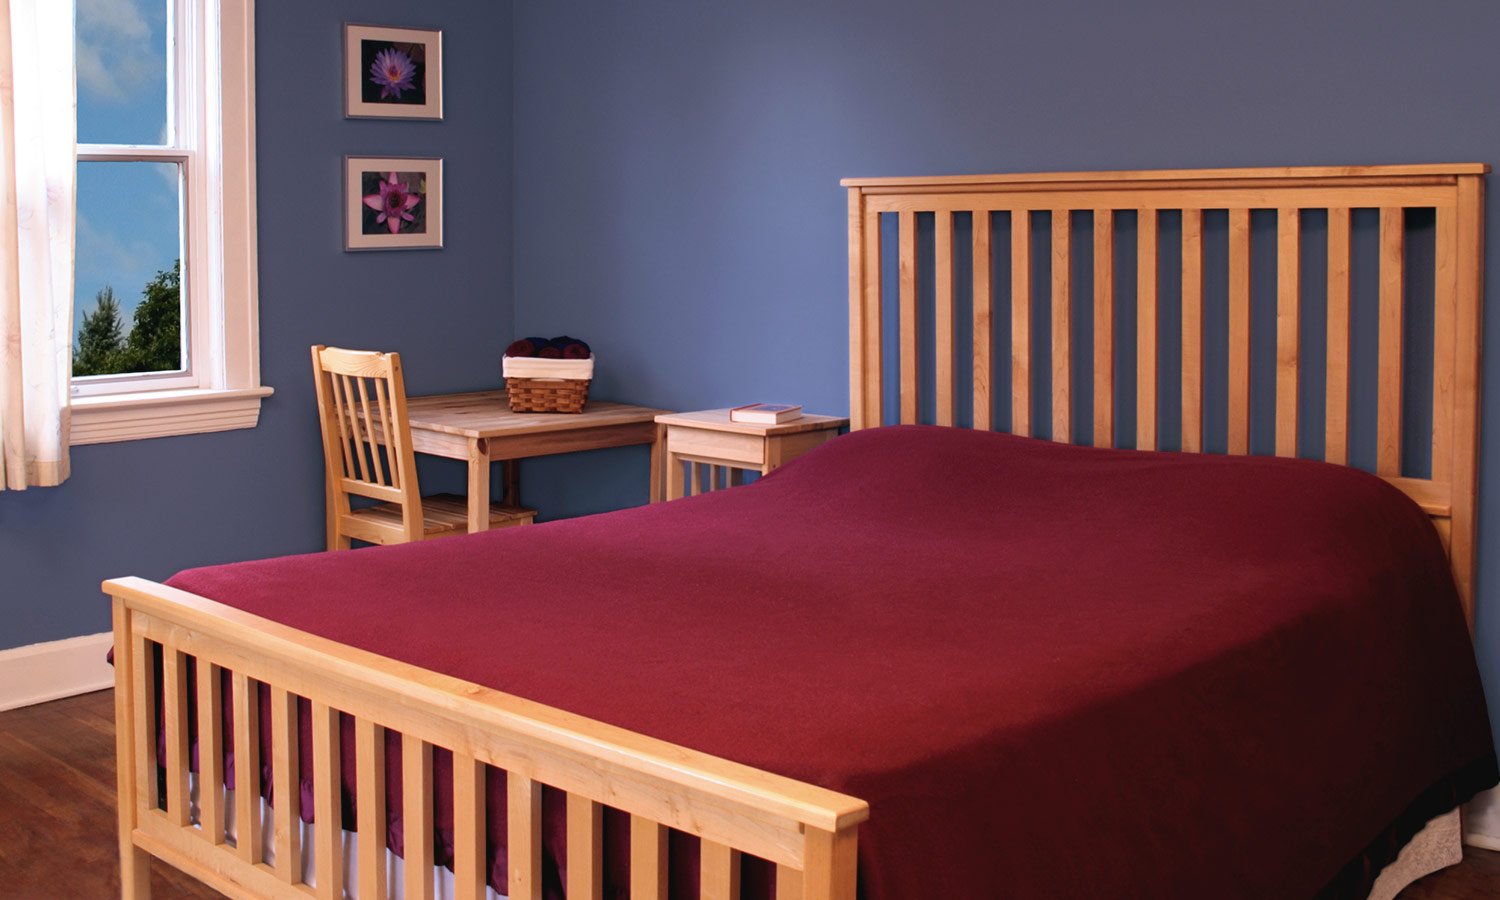 A wooden frame with slats on the headboard and footer.